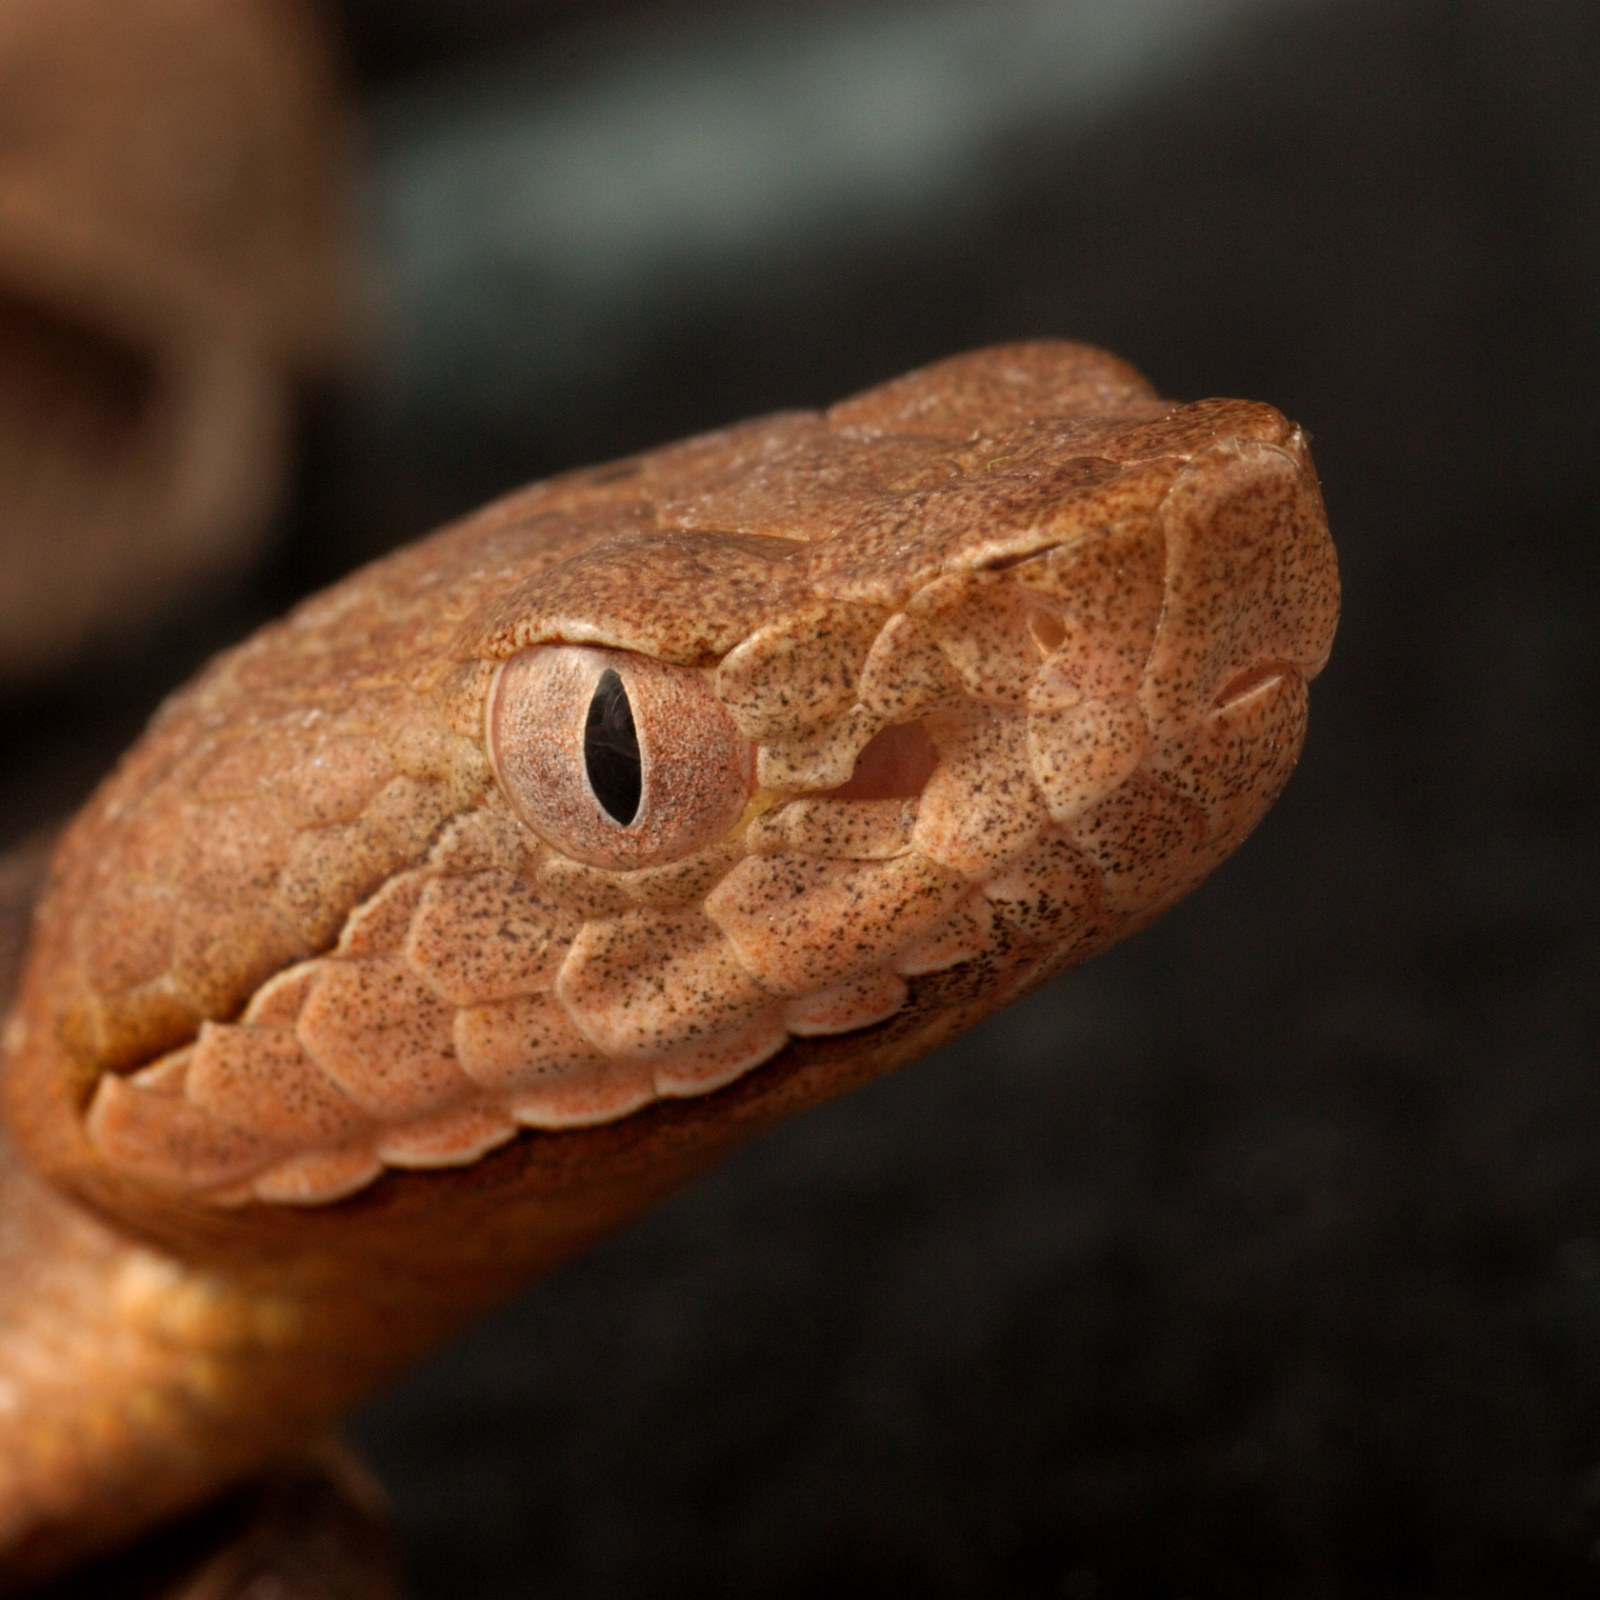 It S Baby Copperhead Snake Season Here S What You Need To Look Out For